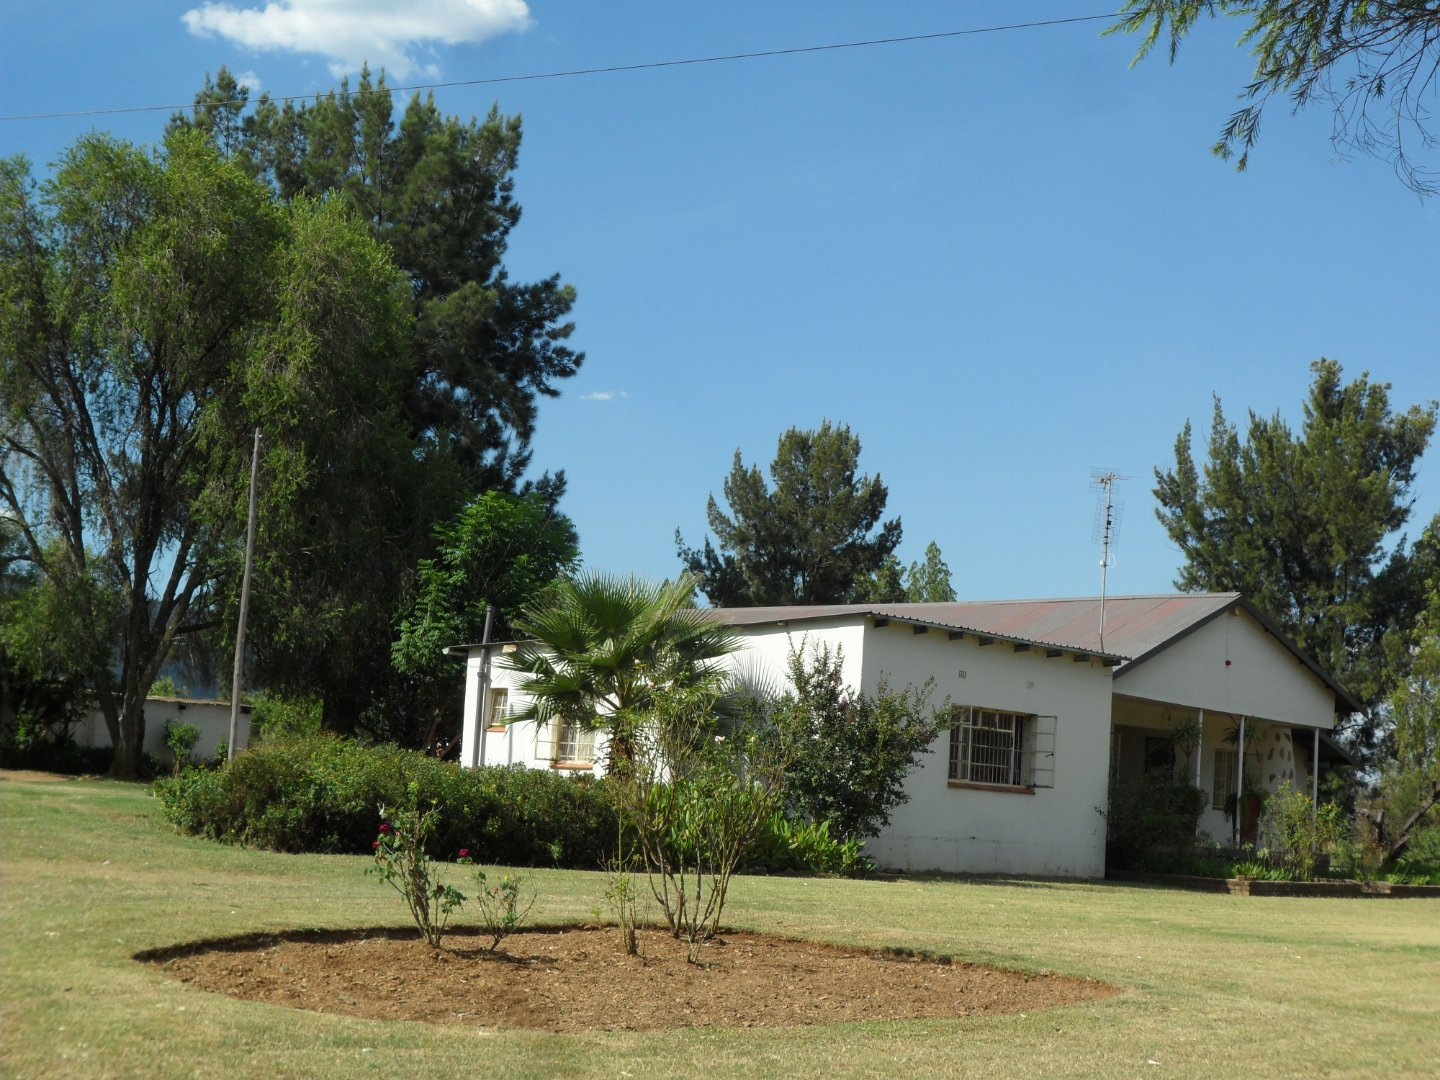 Kameeldrift West property for sale. Ref No: 13755943. Picture no 34